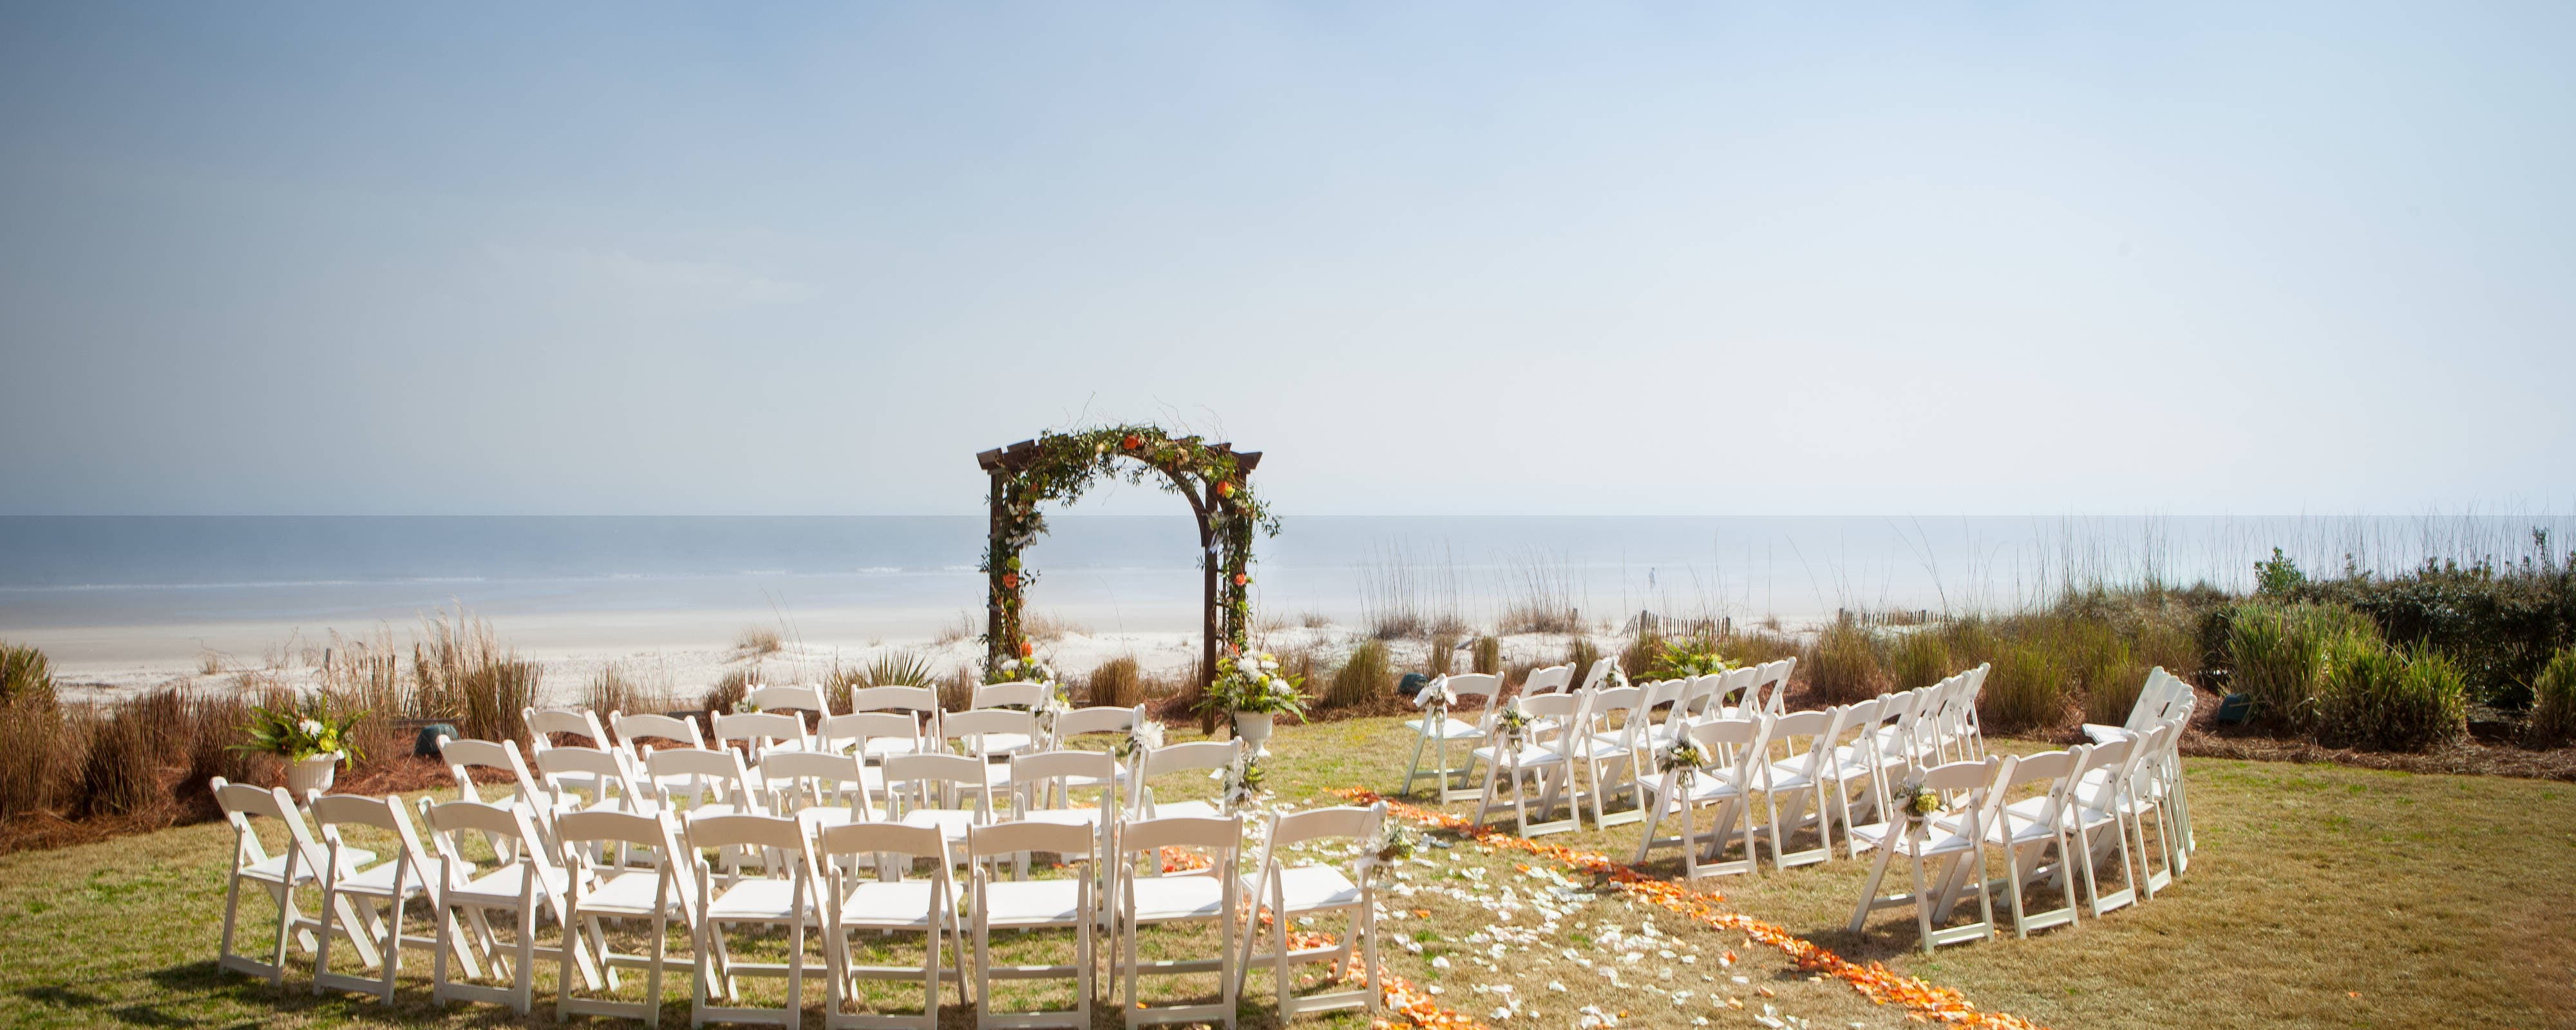 Discover Credit Card Sign In >> Hilton Head Wedding Venues | Hilton Head Marriott Resort & Spa